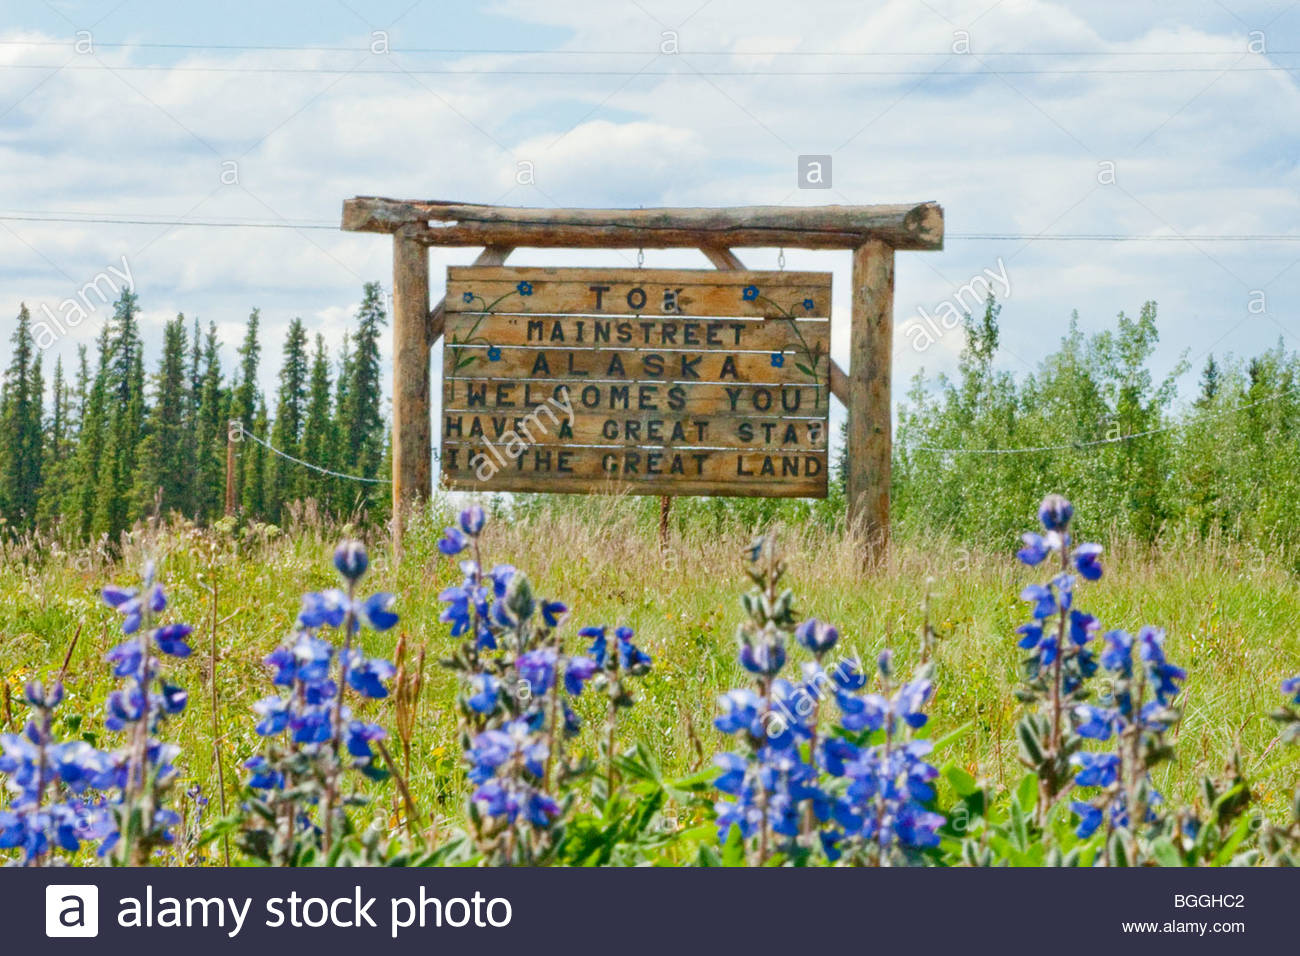 Alaska, Tok. Welcome to Tok sign. Summer. - Stock Image